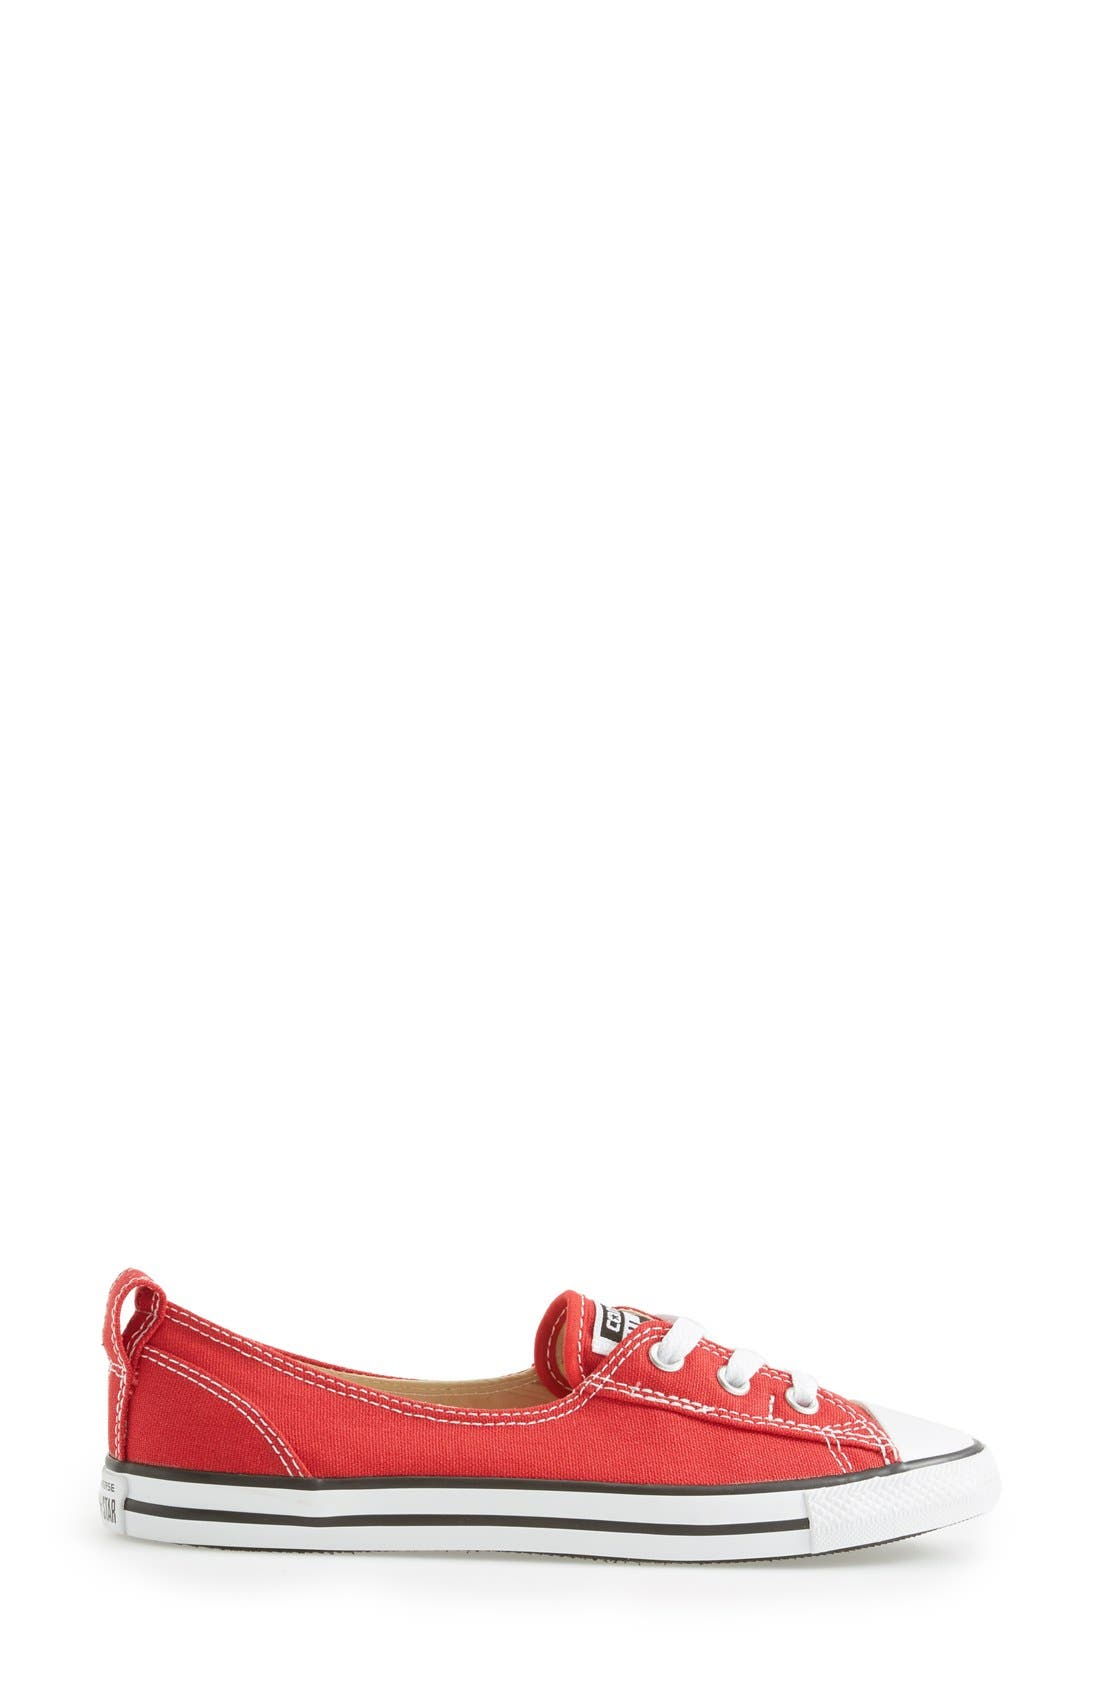 ,                             Chuck Taylor<sup>®</sup> All Star<sup>®</sup> Ballet Canvas Sneaker,                             Alternate thumbnail 26, color,                             600